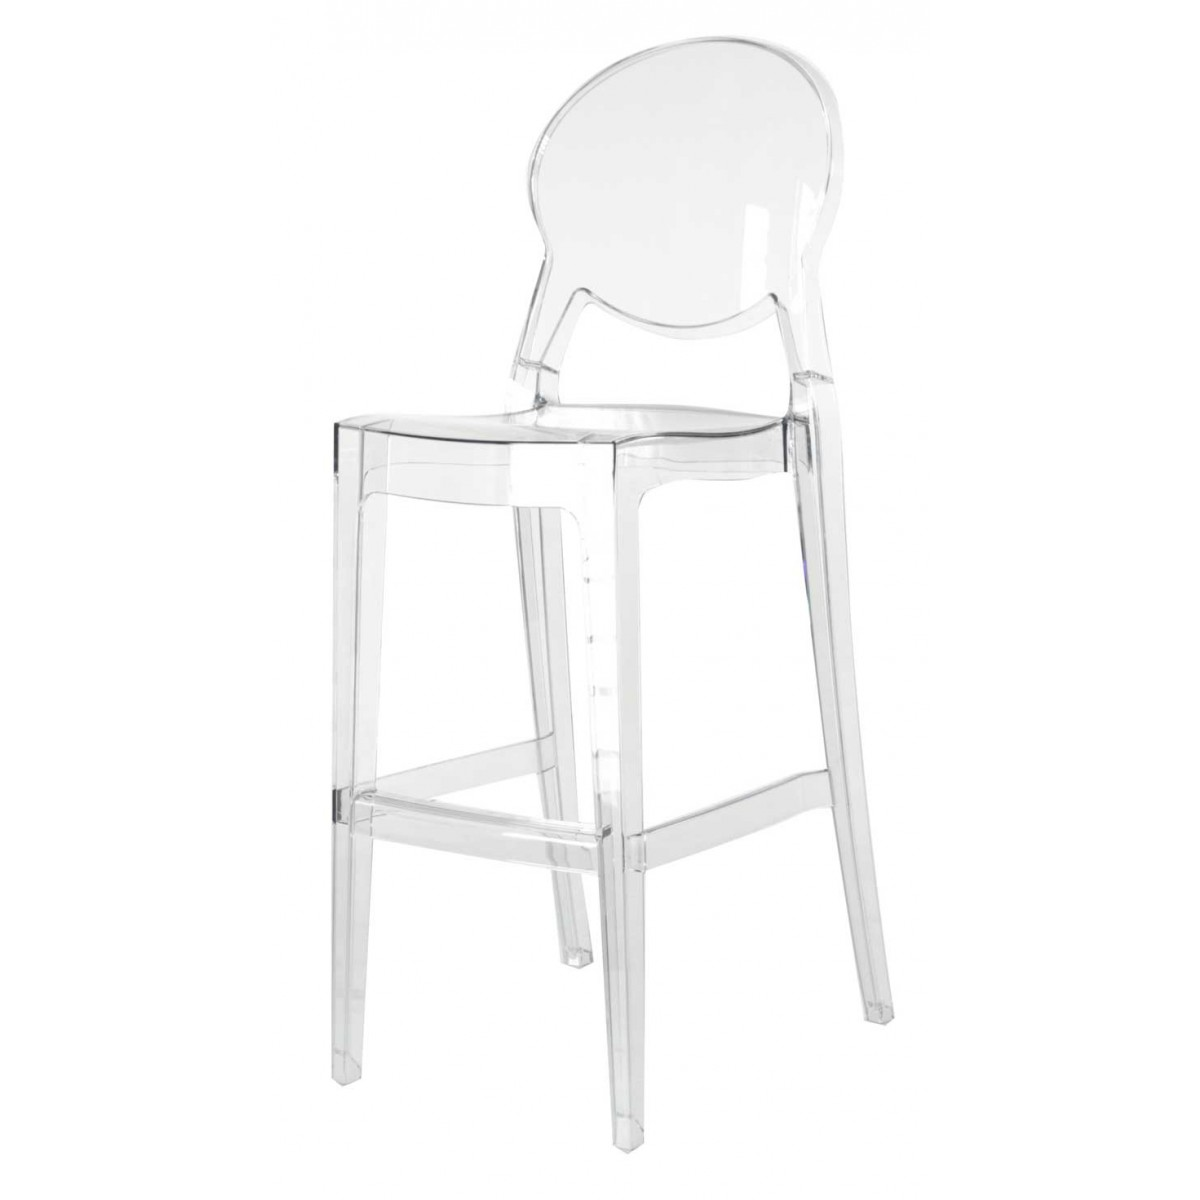 2 x tabouret de bar transparent polycarbonate igloo - Tabouret de bar polycarbonate ...